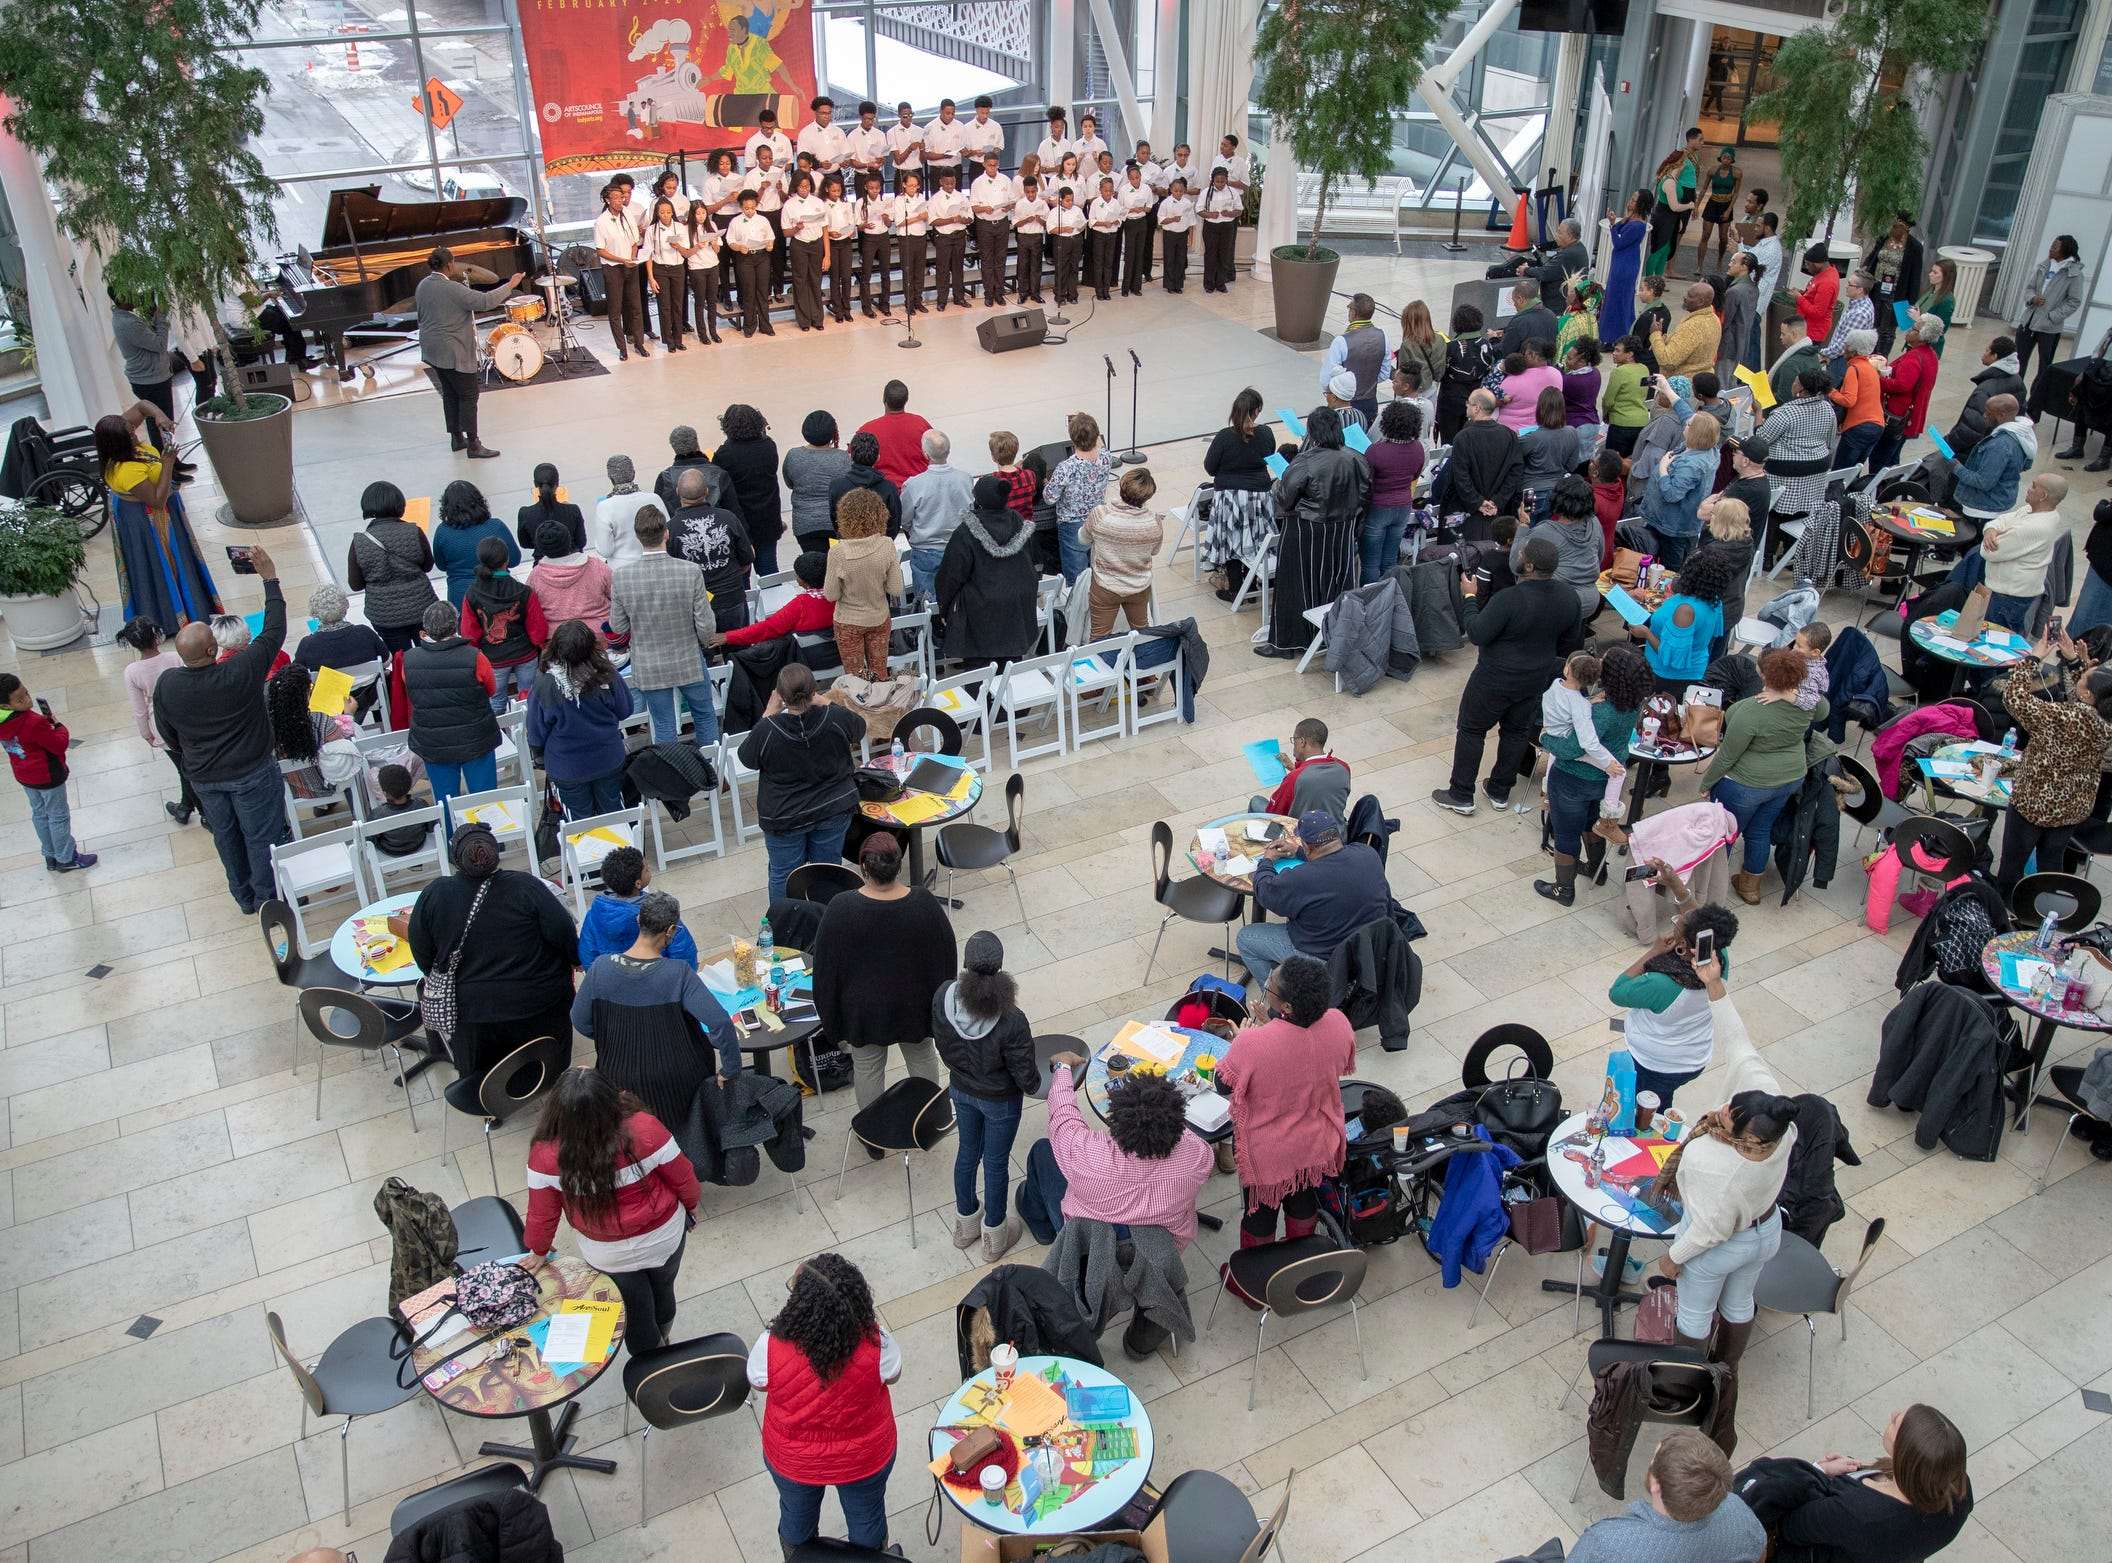 Singers from the Indy Urban Youth Choir kick off the 2019 Art and Soul kickoff celebration at the Indianapolis Arts Garden, Indianapolis, Saturday, Feb. 2, 2019.